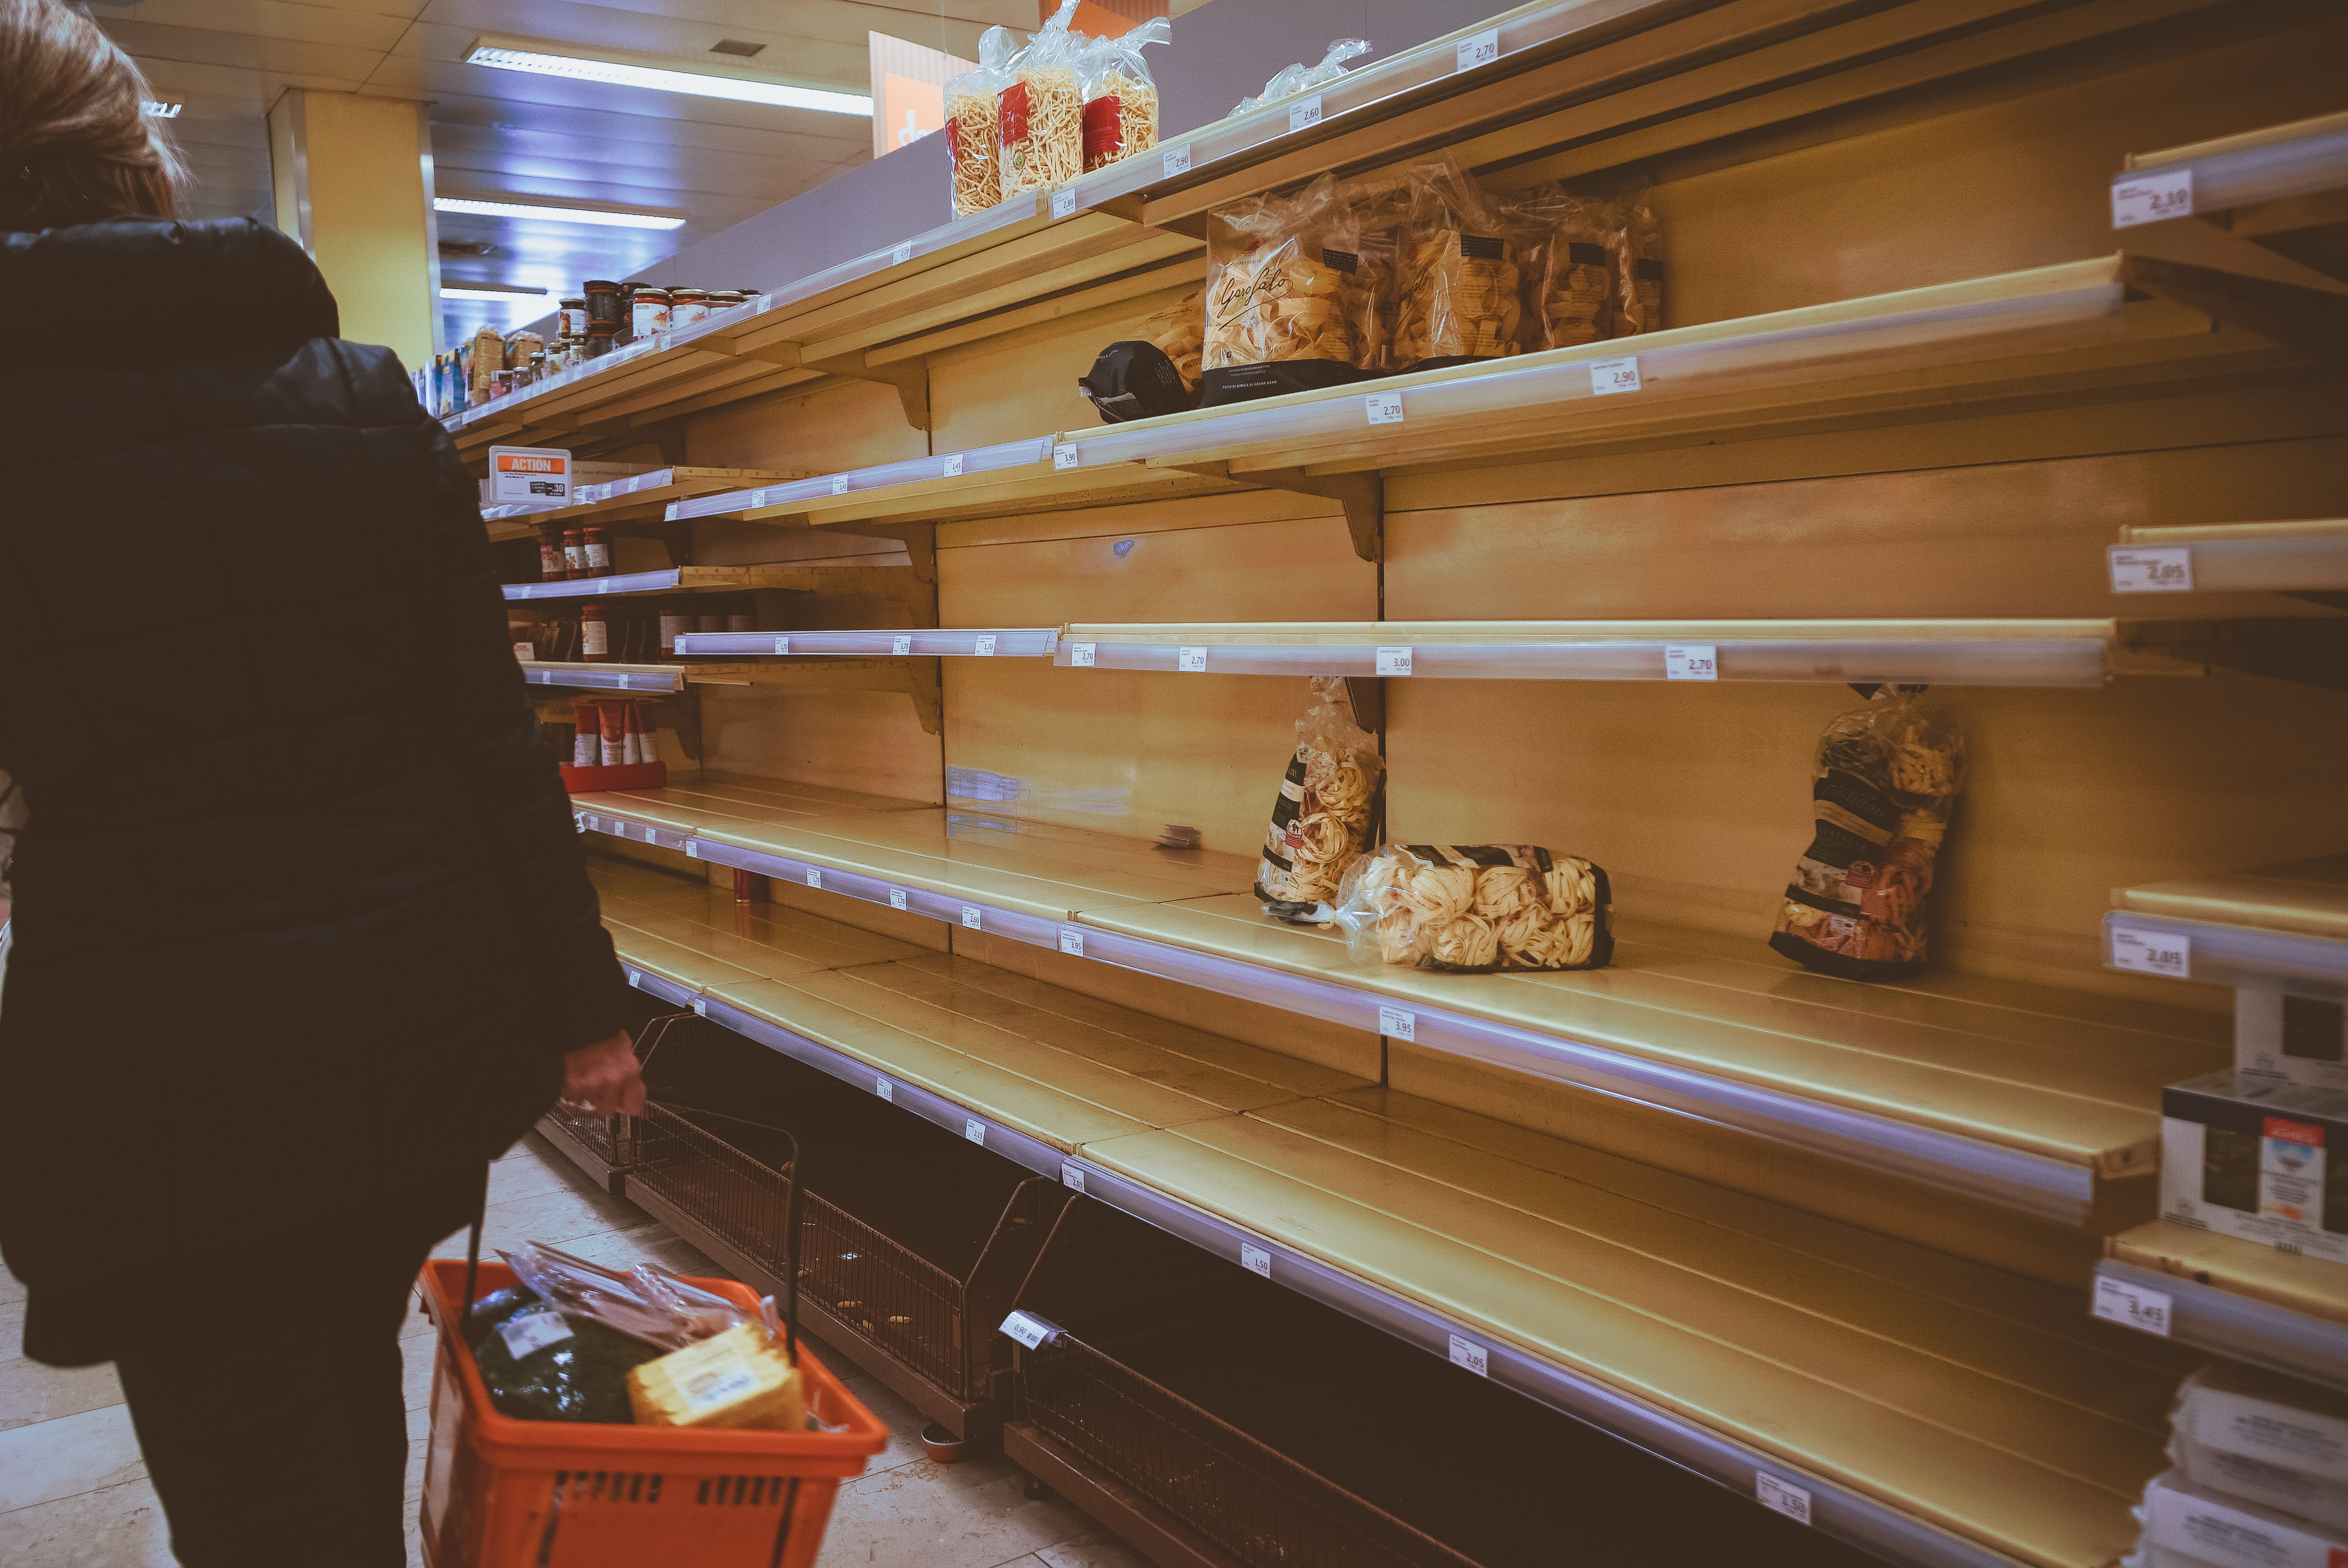 Empty Bread Shelves at Grocery Store